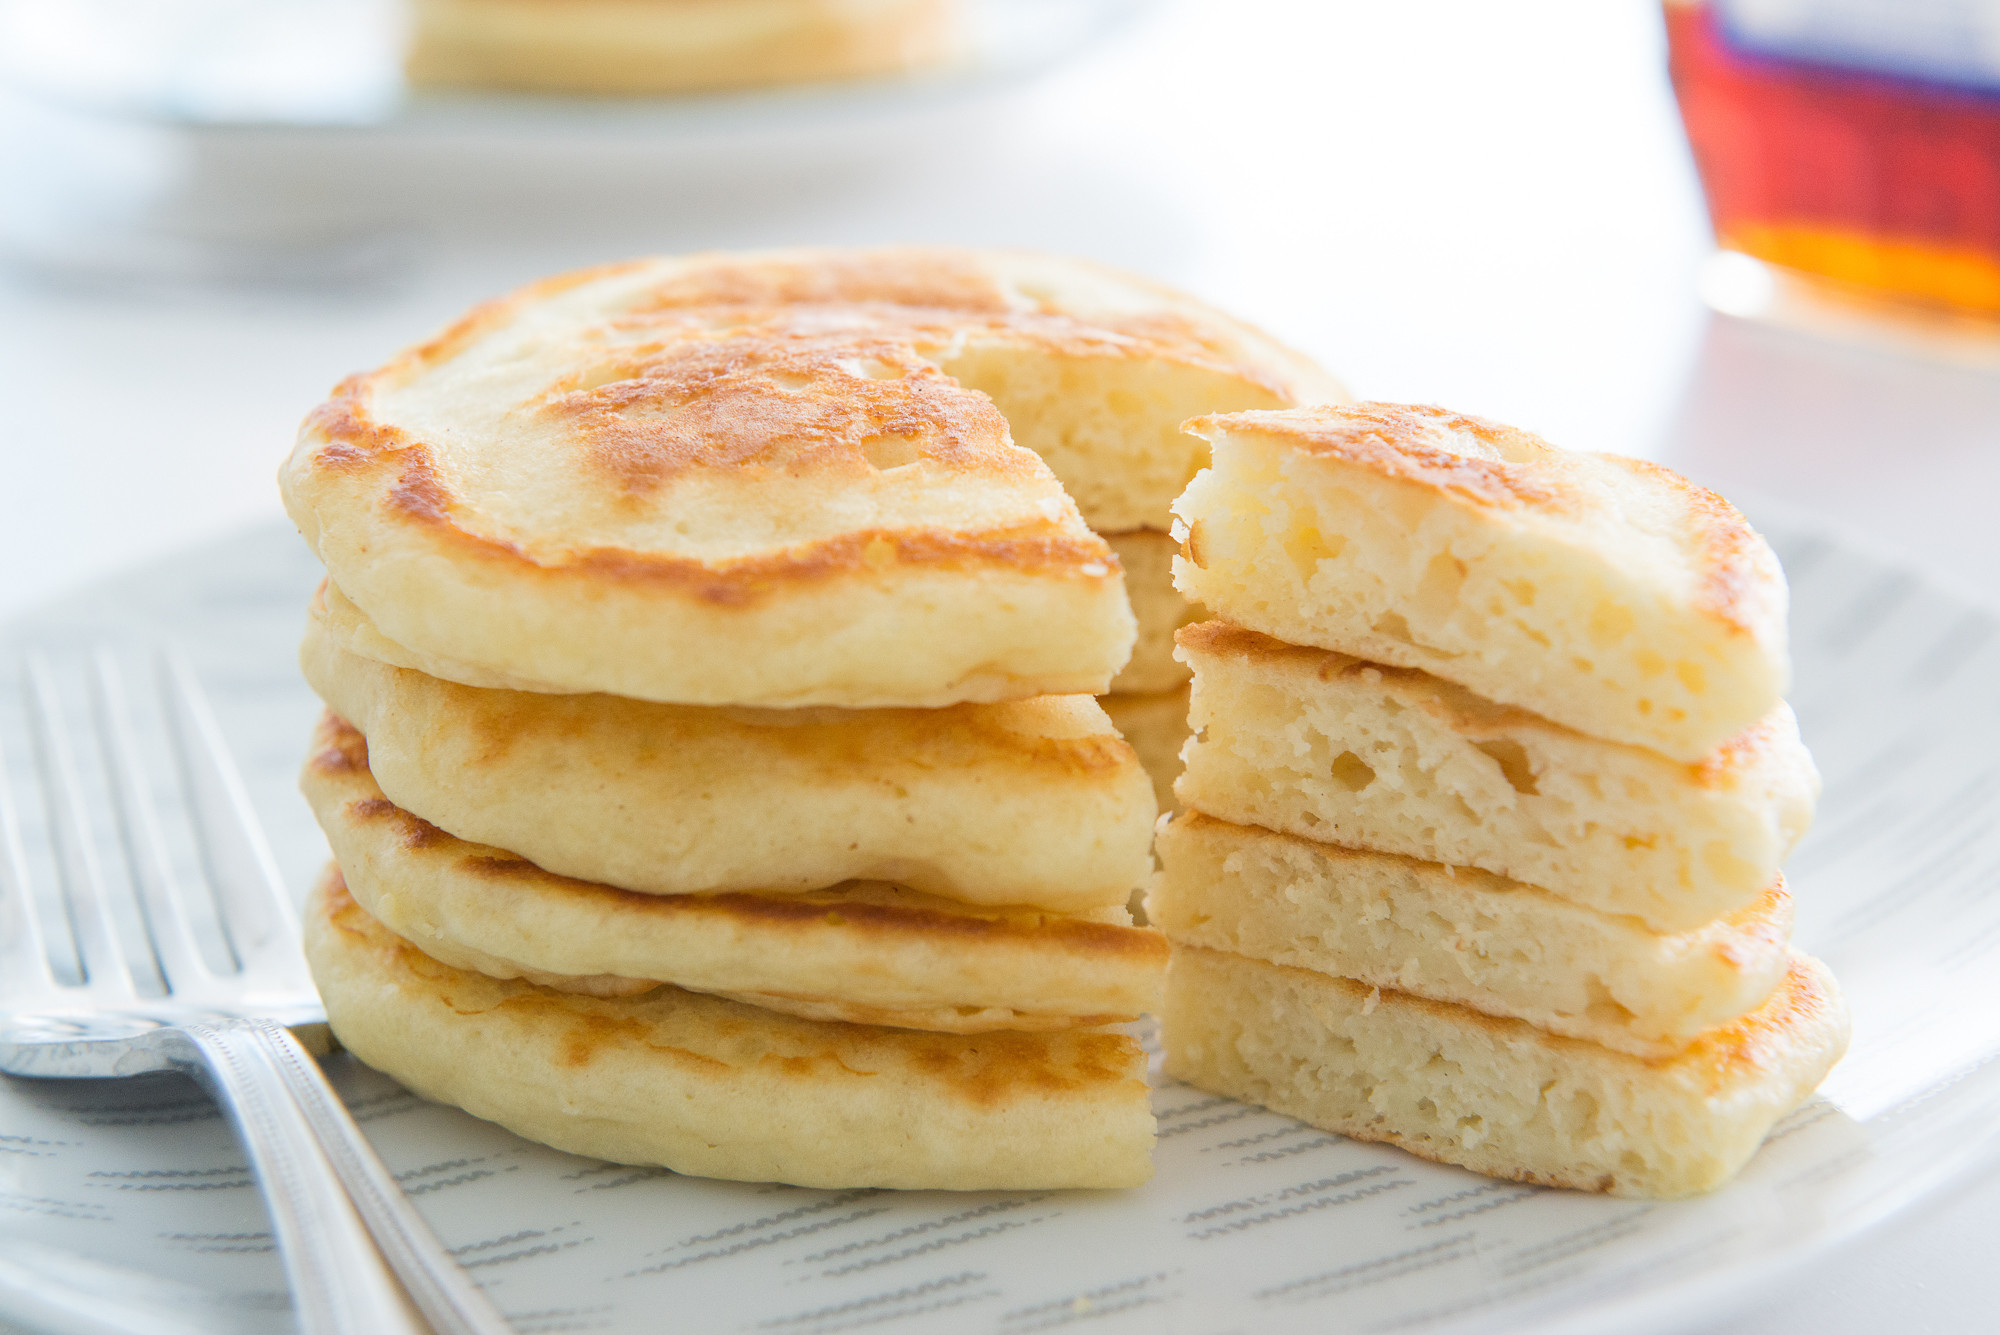 How To Make Perfect Pancakes  Best Tips for Making Pancakes